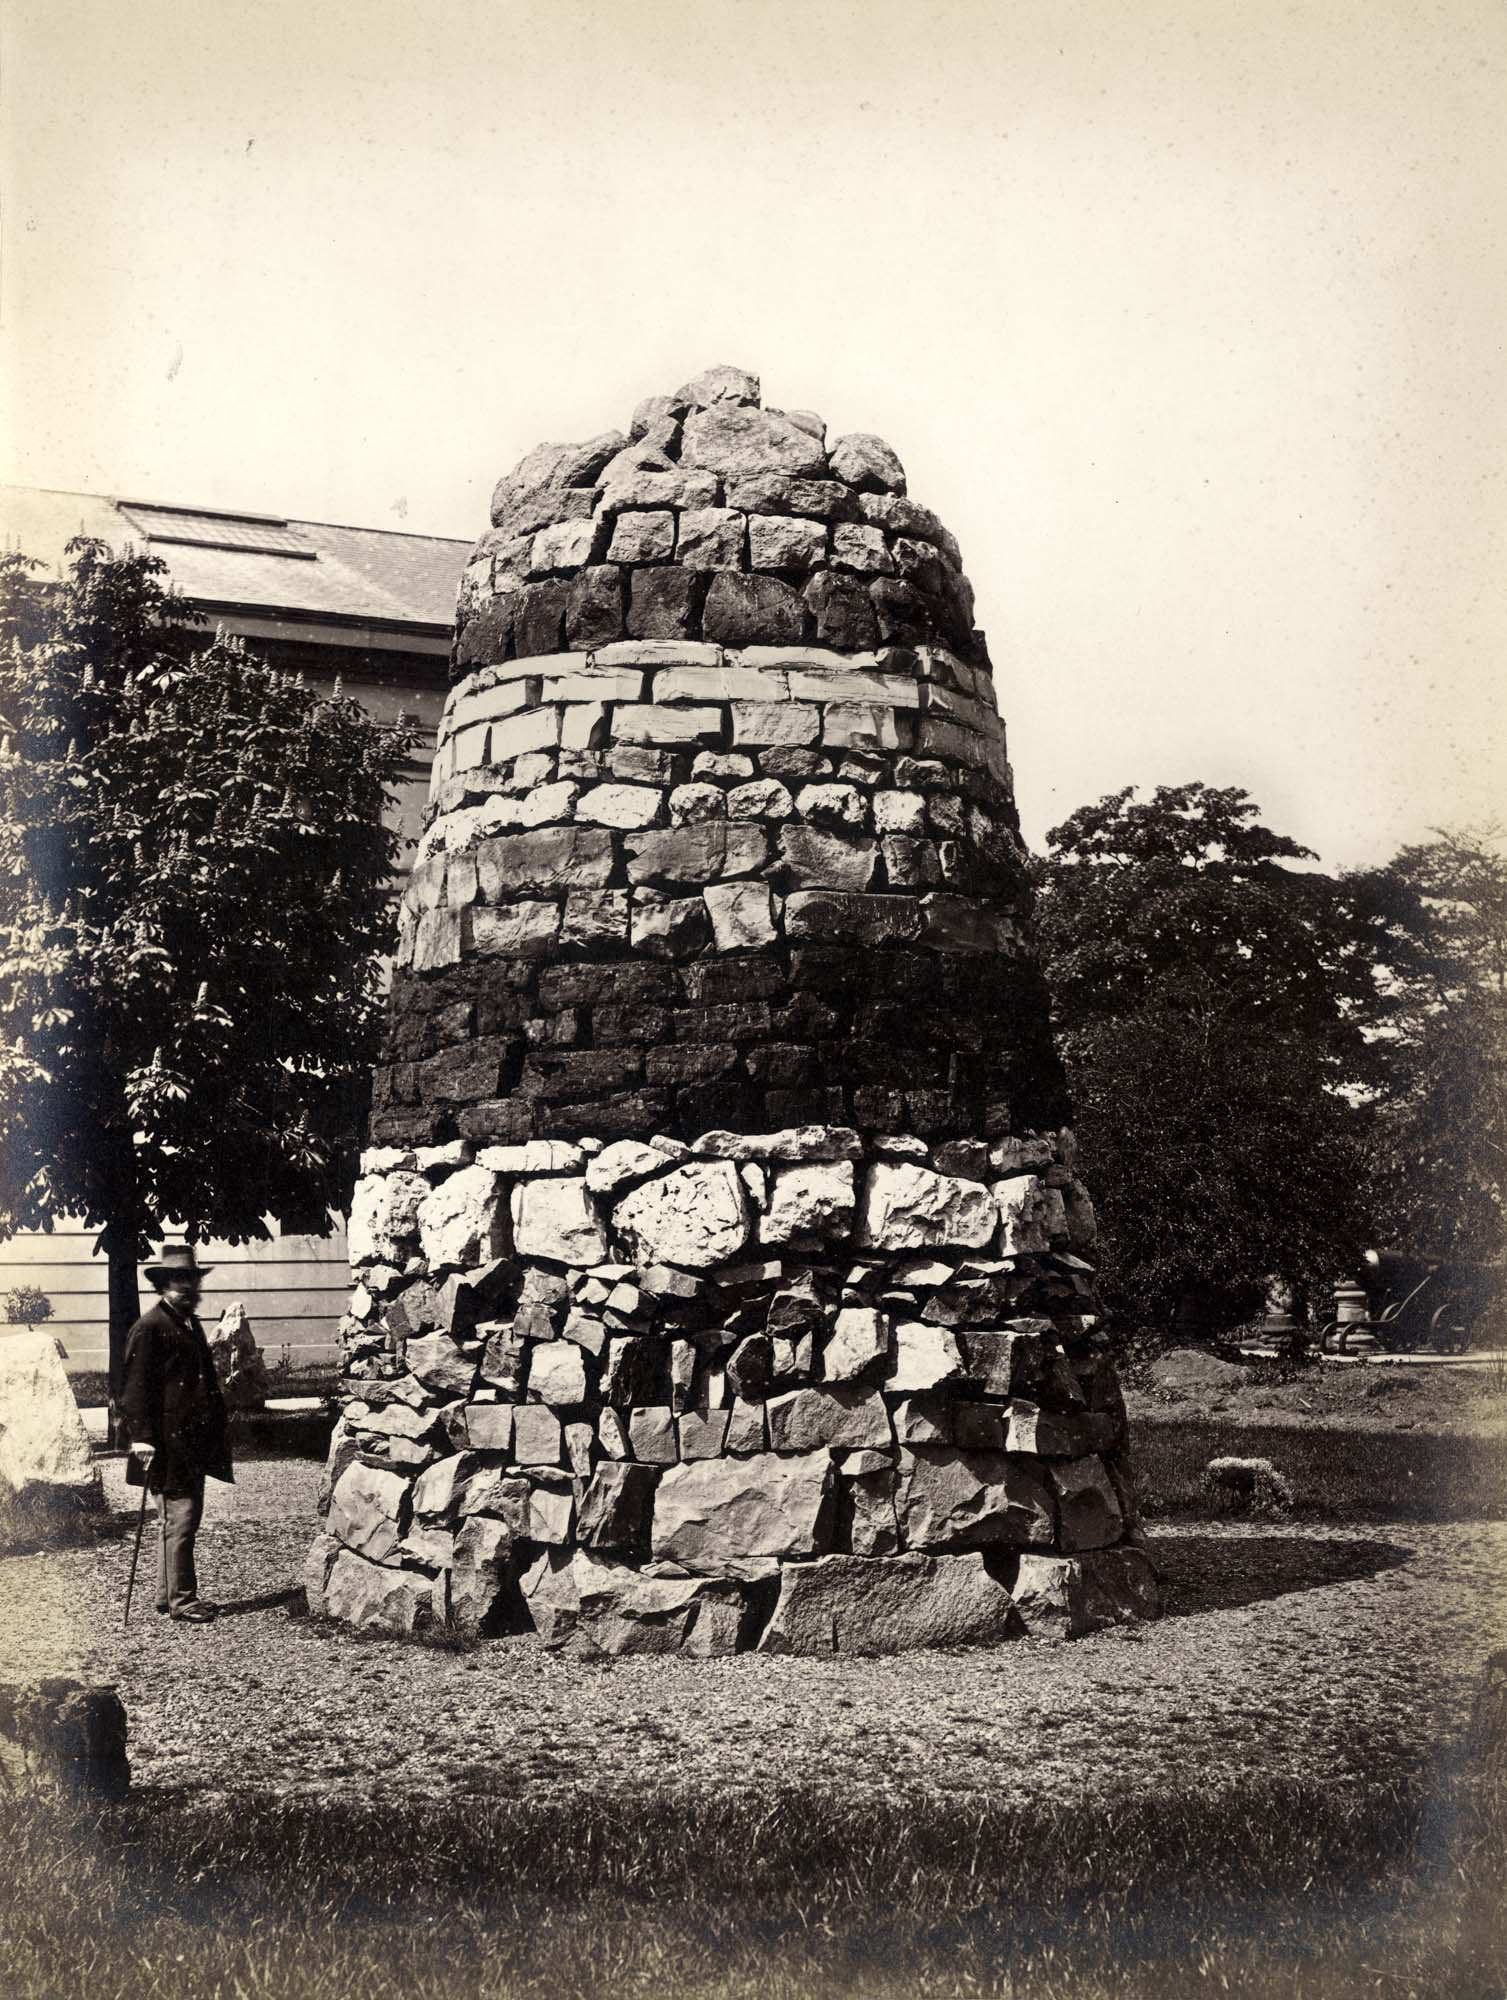 The 1869 'Column of Rocks' showing all the hard rocks of Leicestershire in their natural sequence. This exhibit was part of the museum gardens that were built over by the art school expansion. -